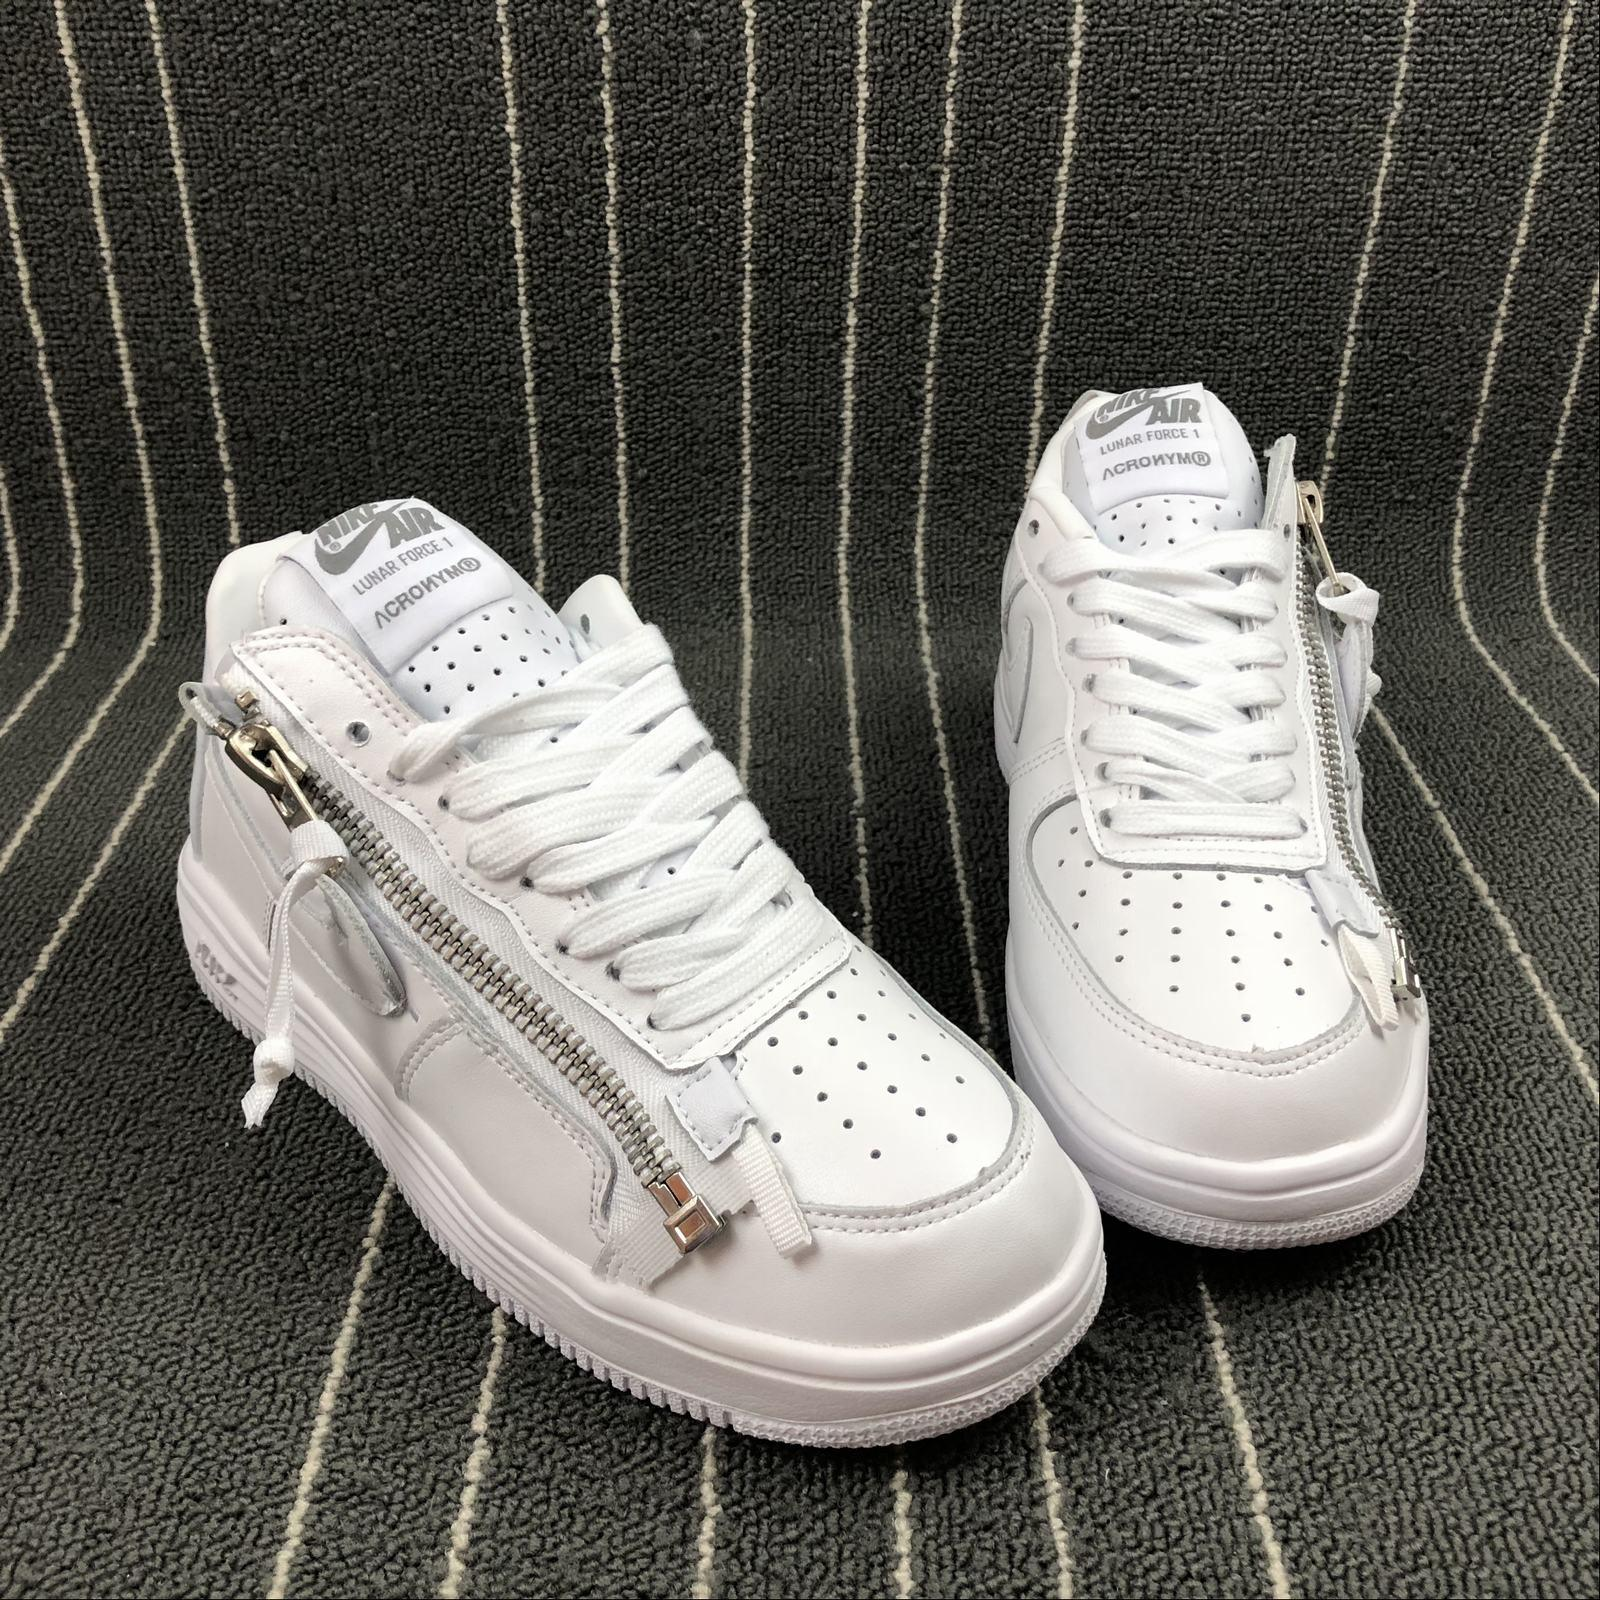 2019 New Nike Air Force One High Quality 1:1 Wholesale